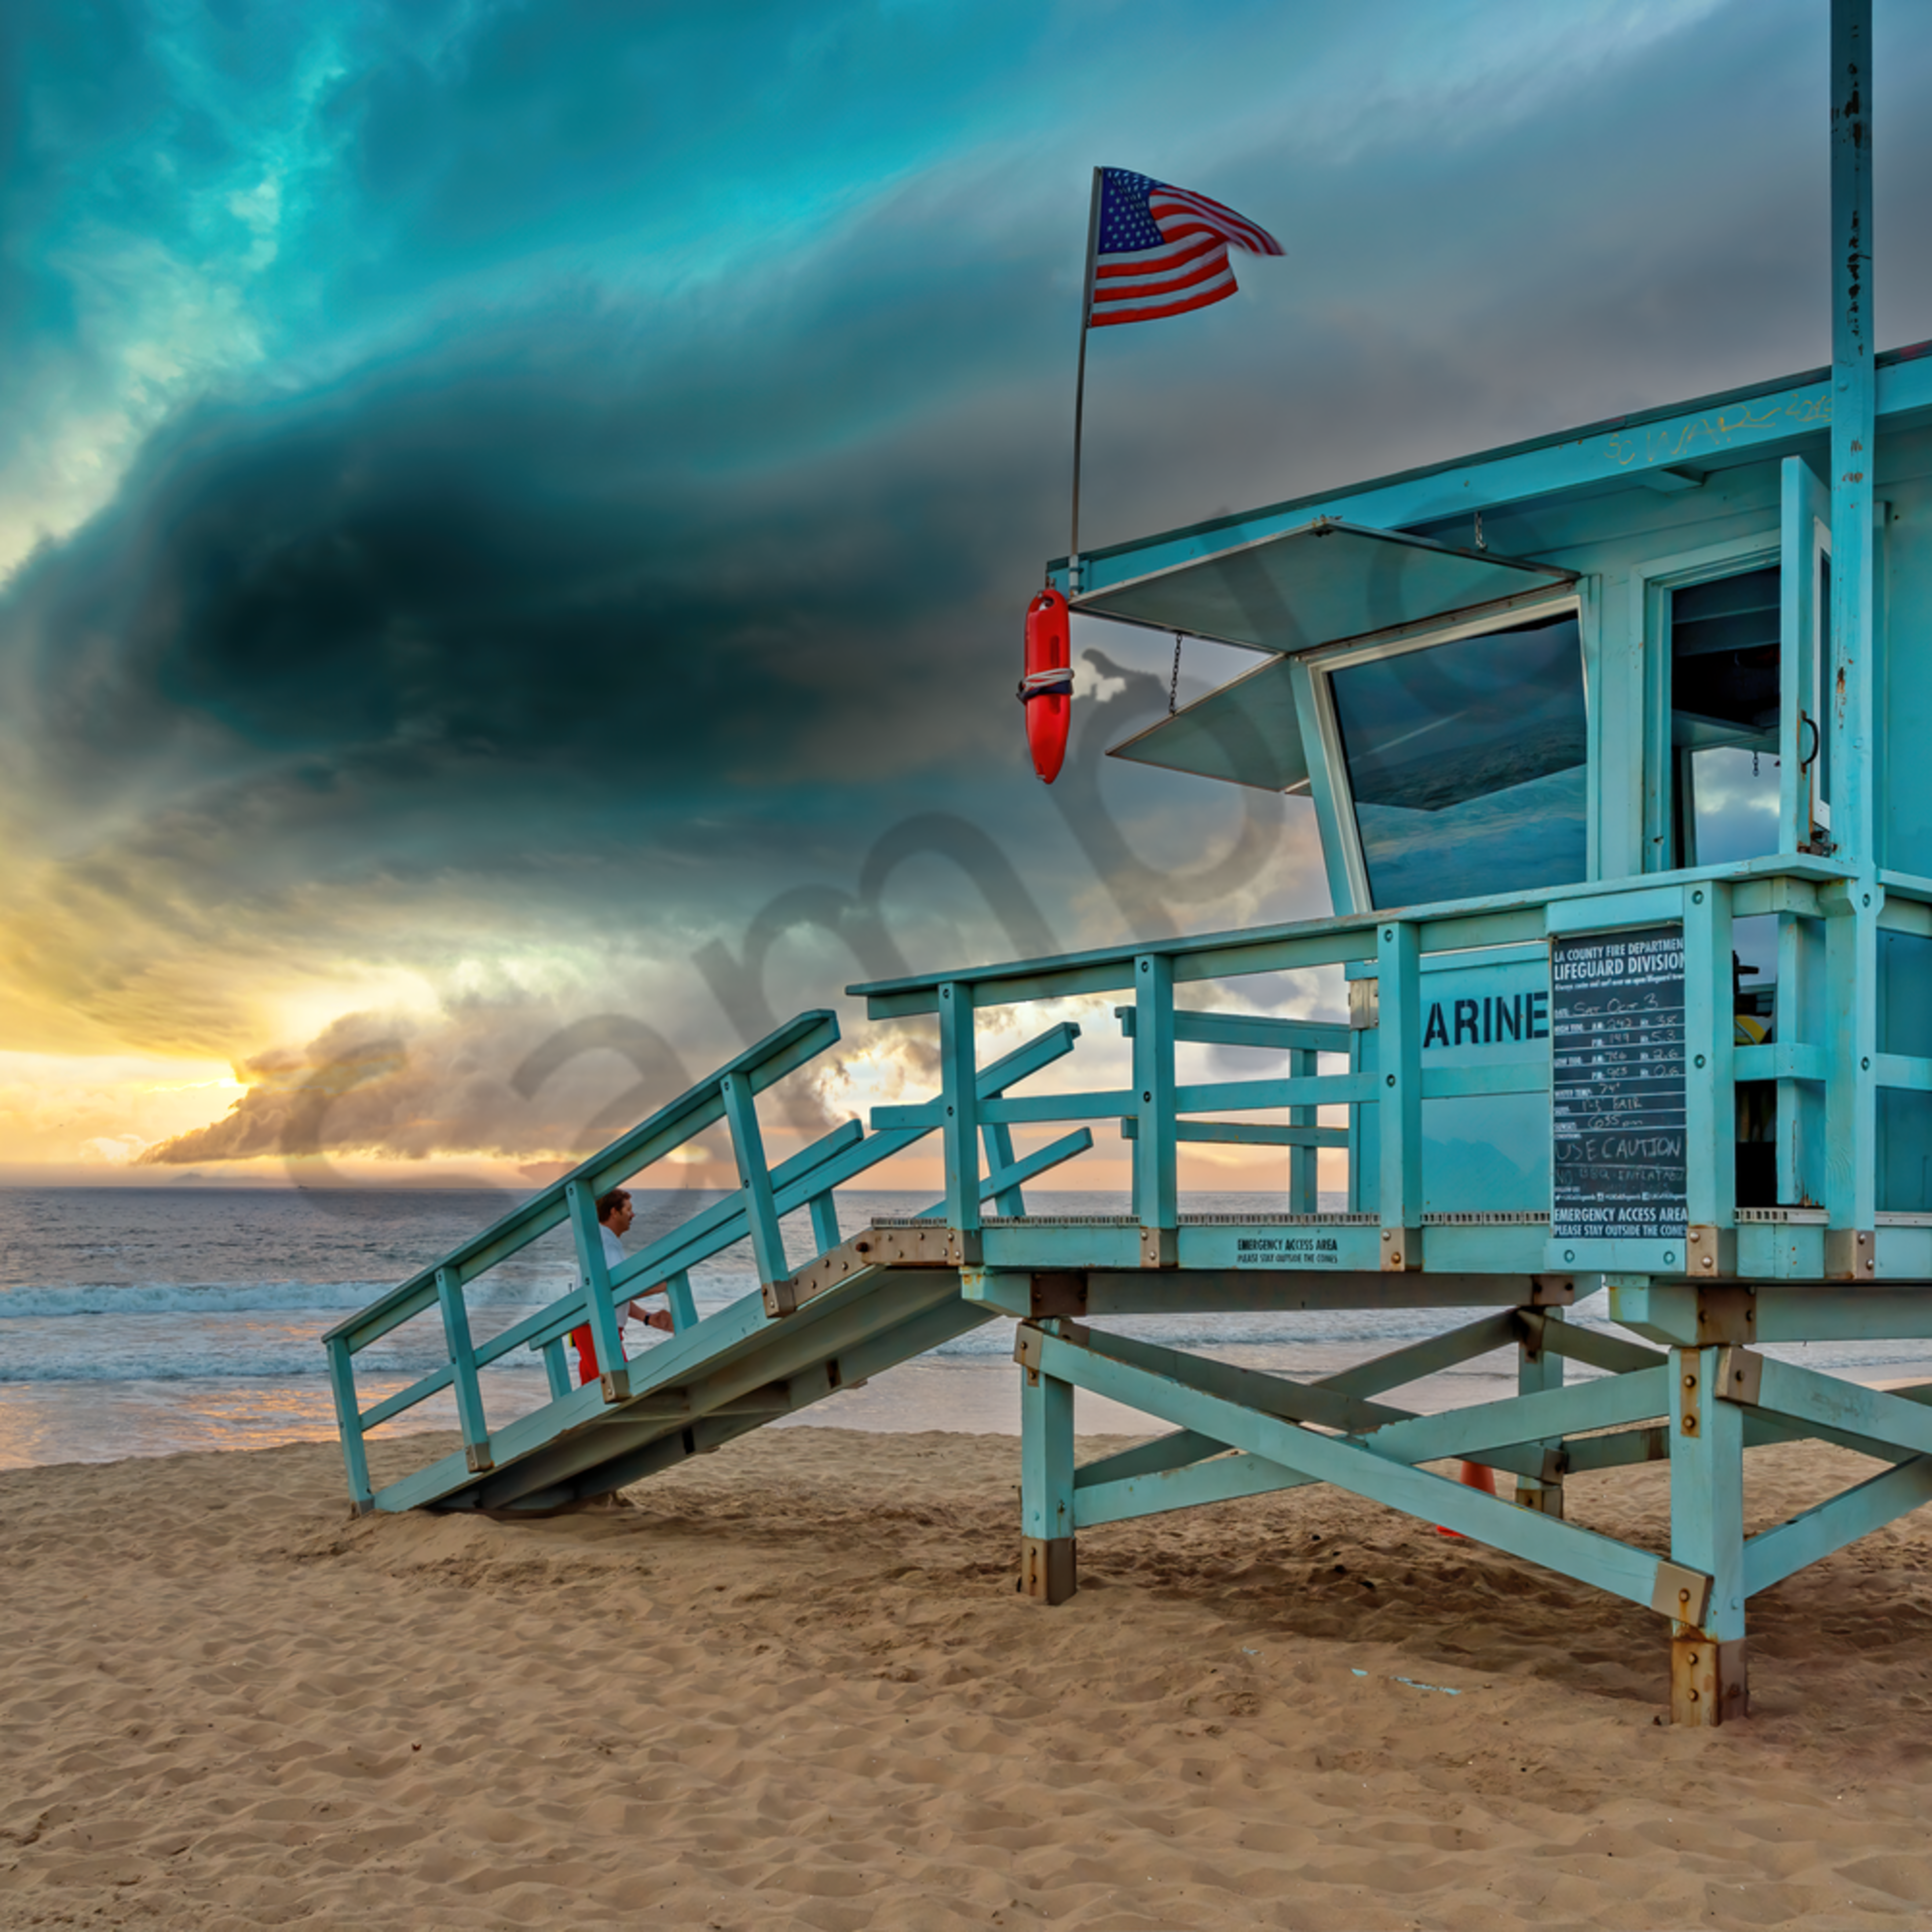 La beach and stormy skies california qwgtly